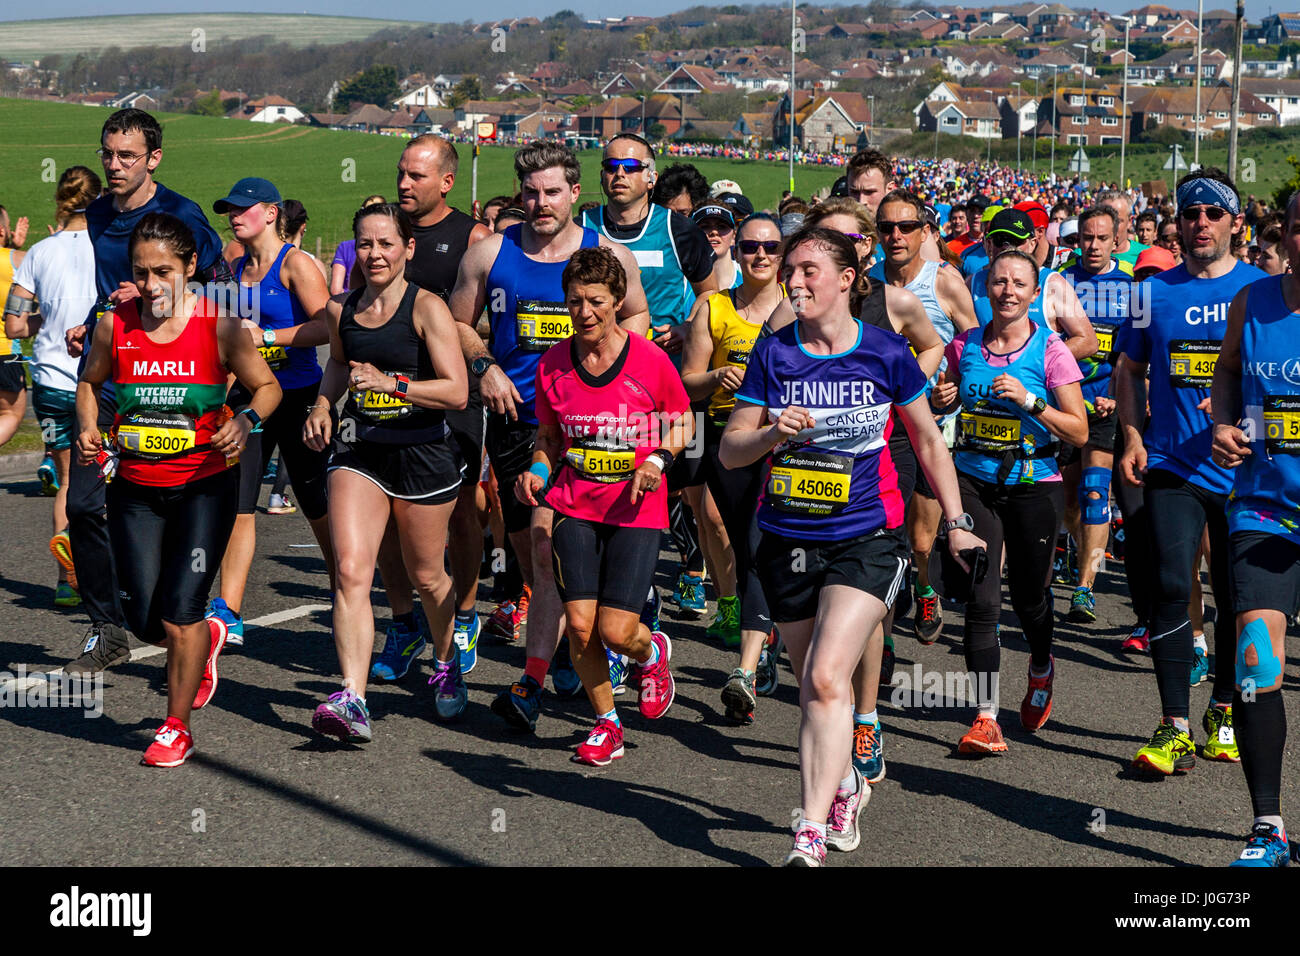 Athletes Taking Part In The Brighton Marathon, Brighton, Sussex, UK - Stock Image